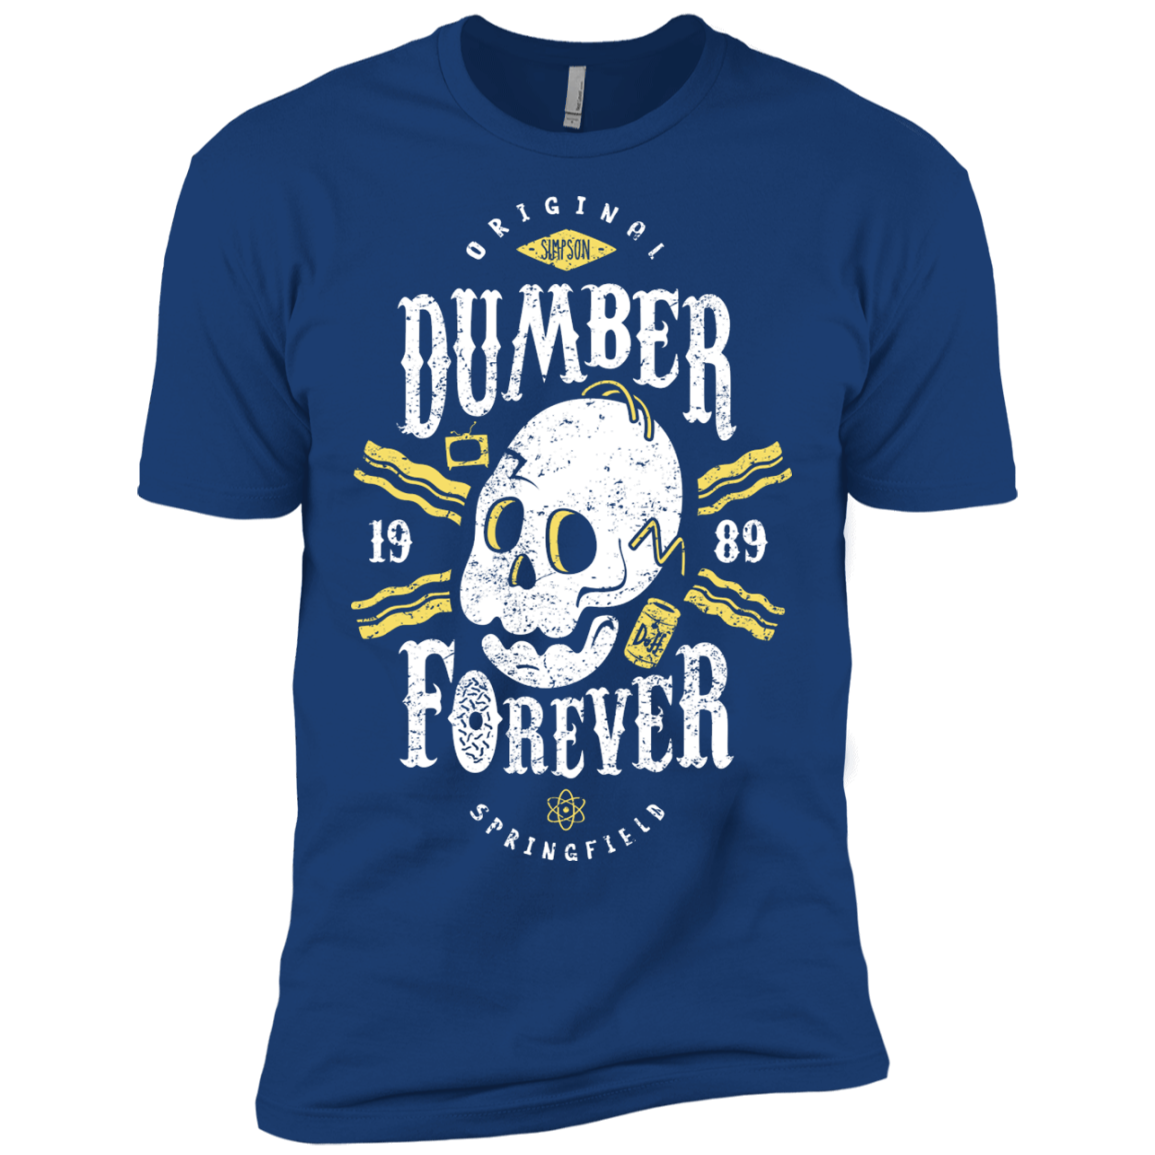 Dumber Forever Matching Family T-Shirts - The Sun Cat